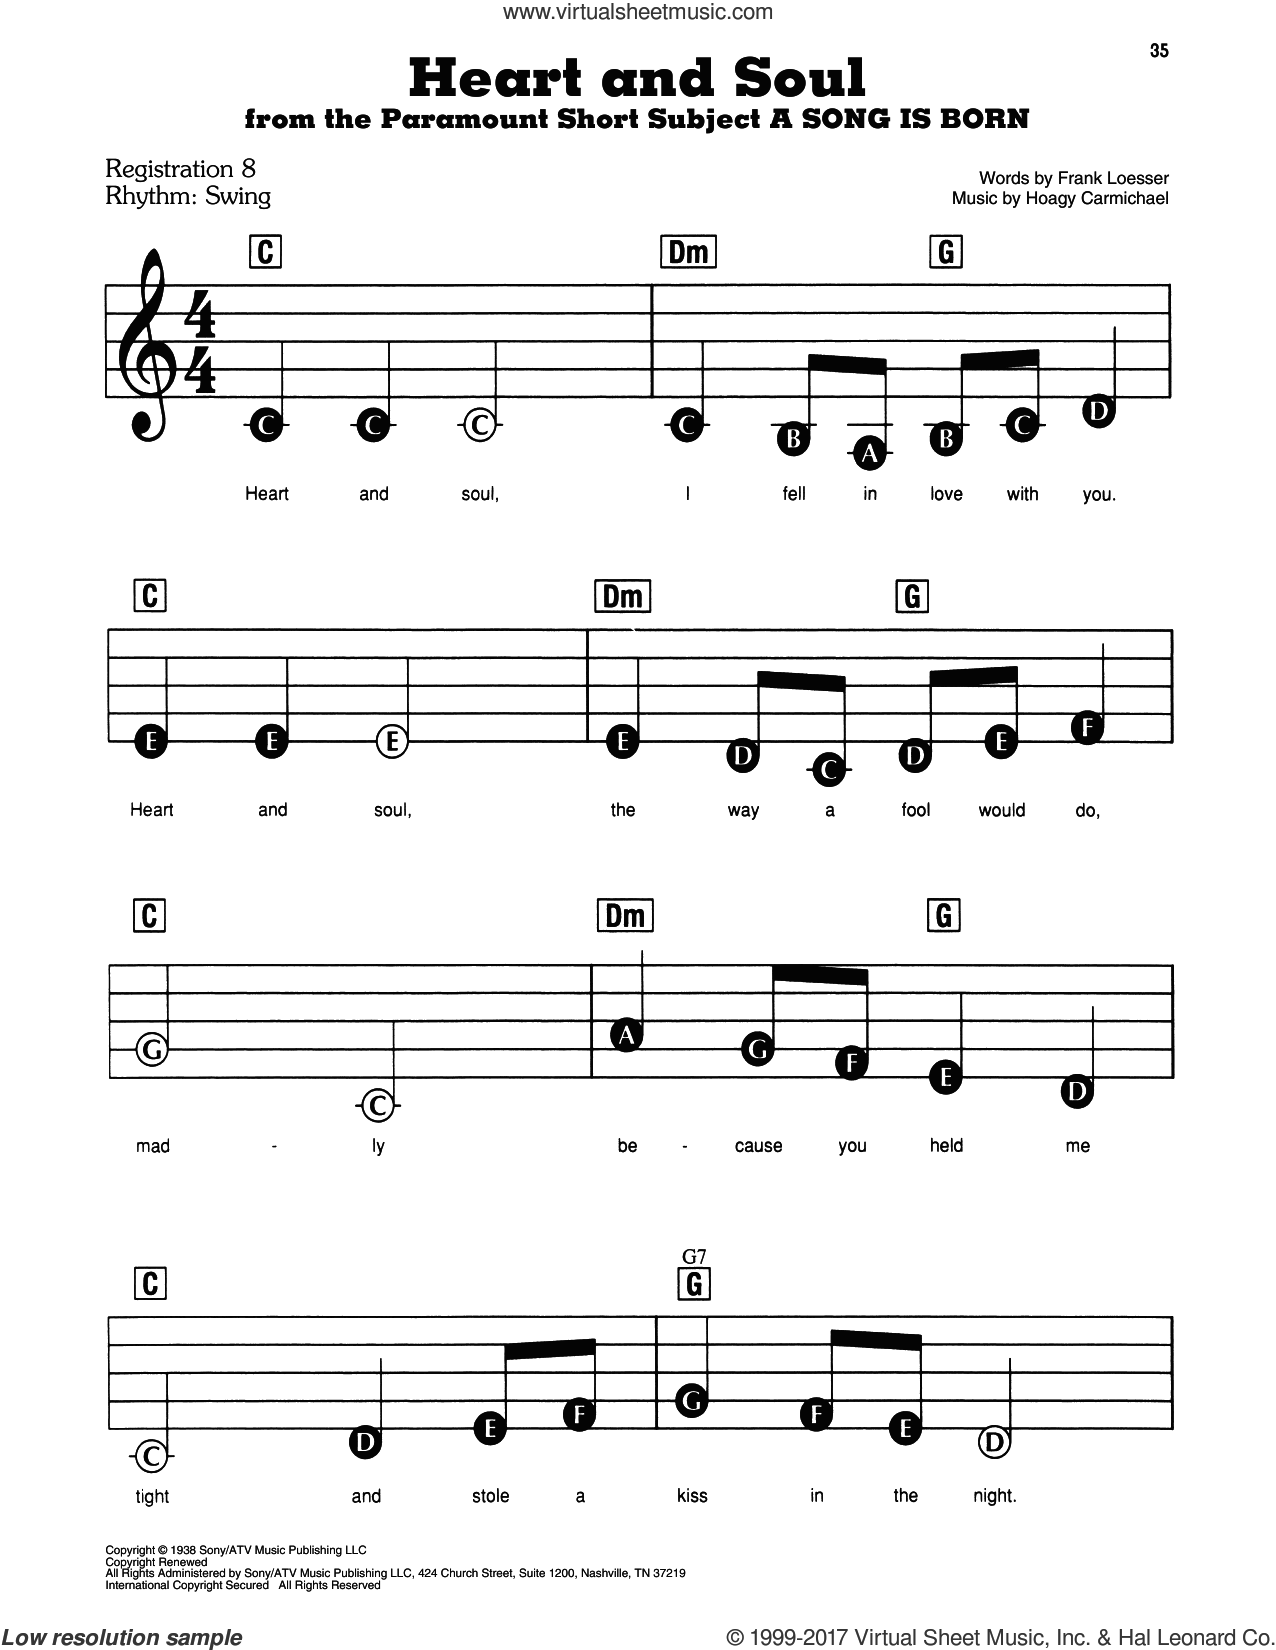 Heart And Soul sheet music for piano or keyboard (E-Z Play) by Frank Loesser and Hoagy Carmichael, easy skill level